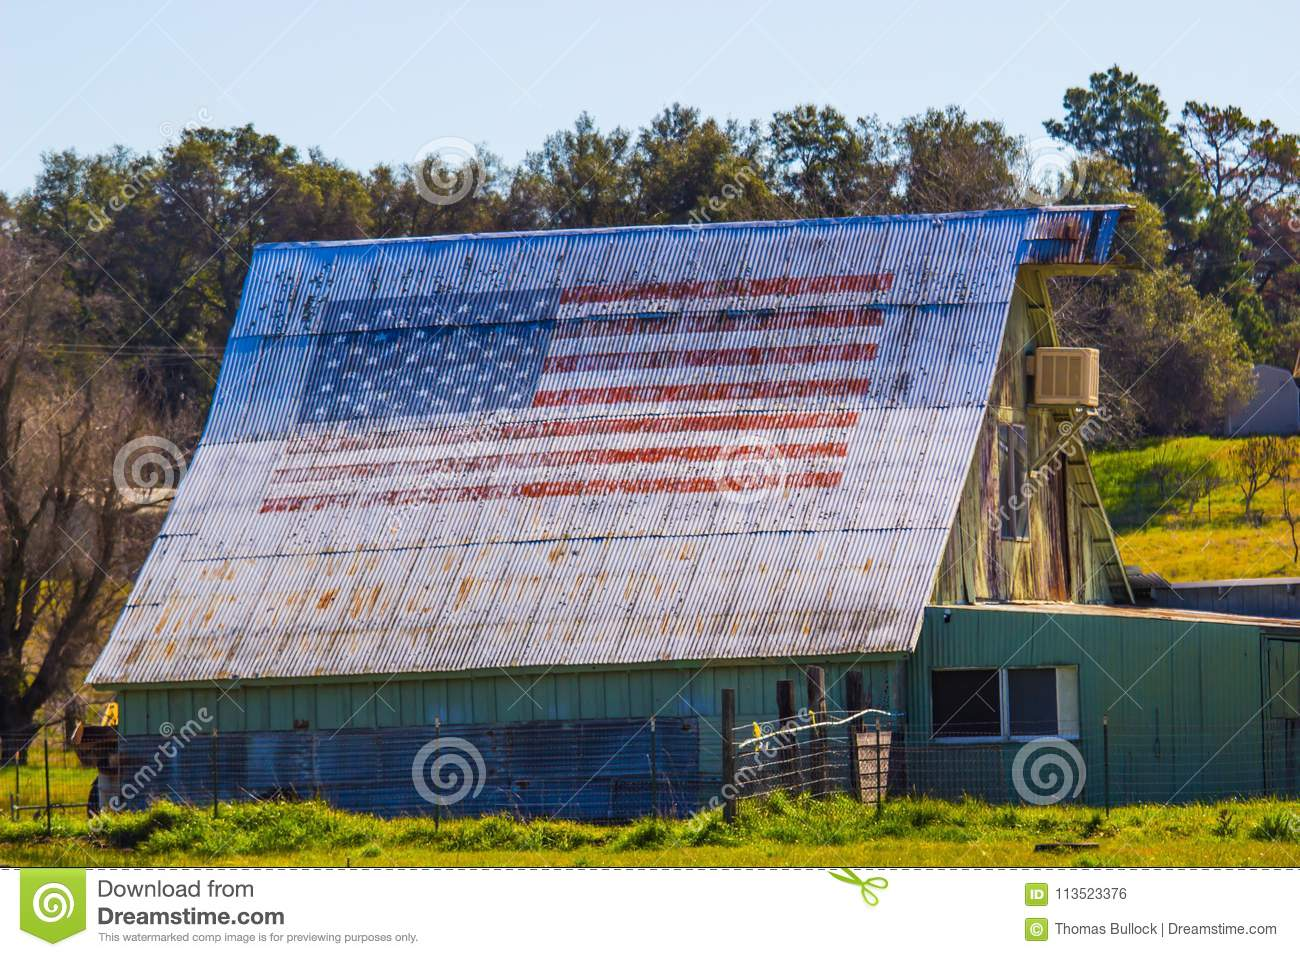 dc74a4cca300 American Flag Painted On Old Tin Roof Of Barn Stock Photo - Image of ...